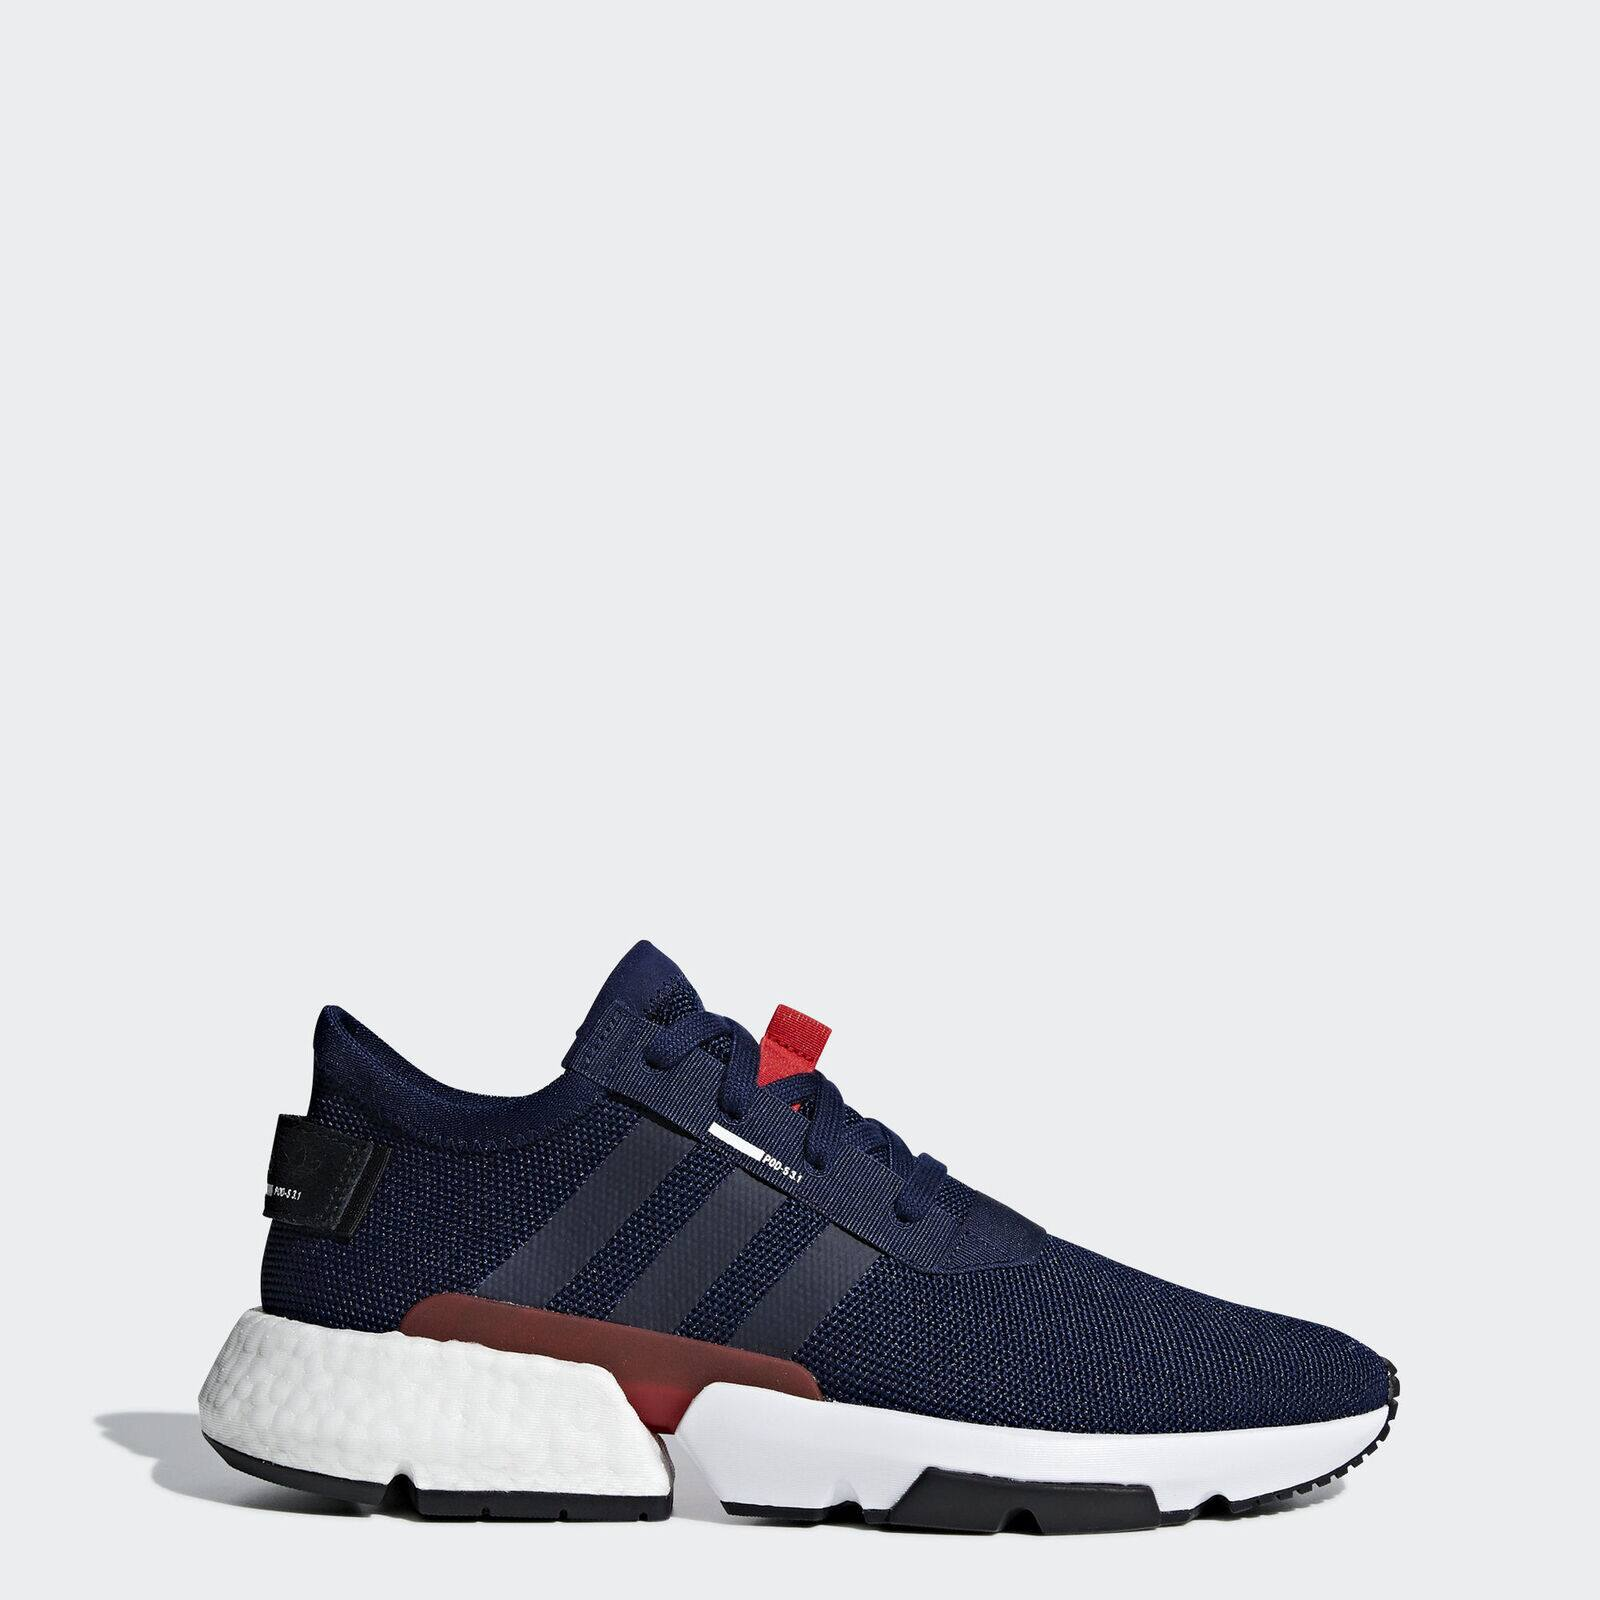 adidas POD-S3.1 Men s Shoes  42.50 + Free Shipping - Slickdeals.net 907515107